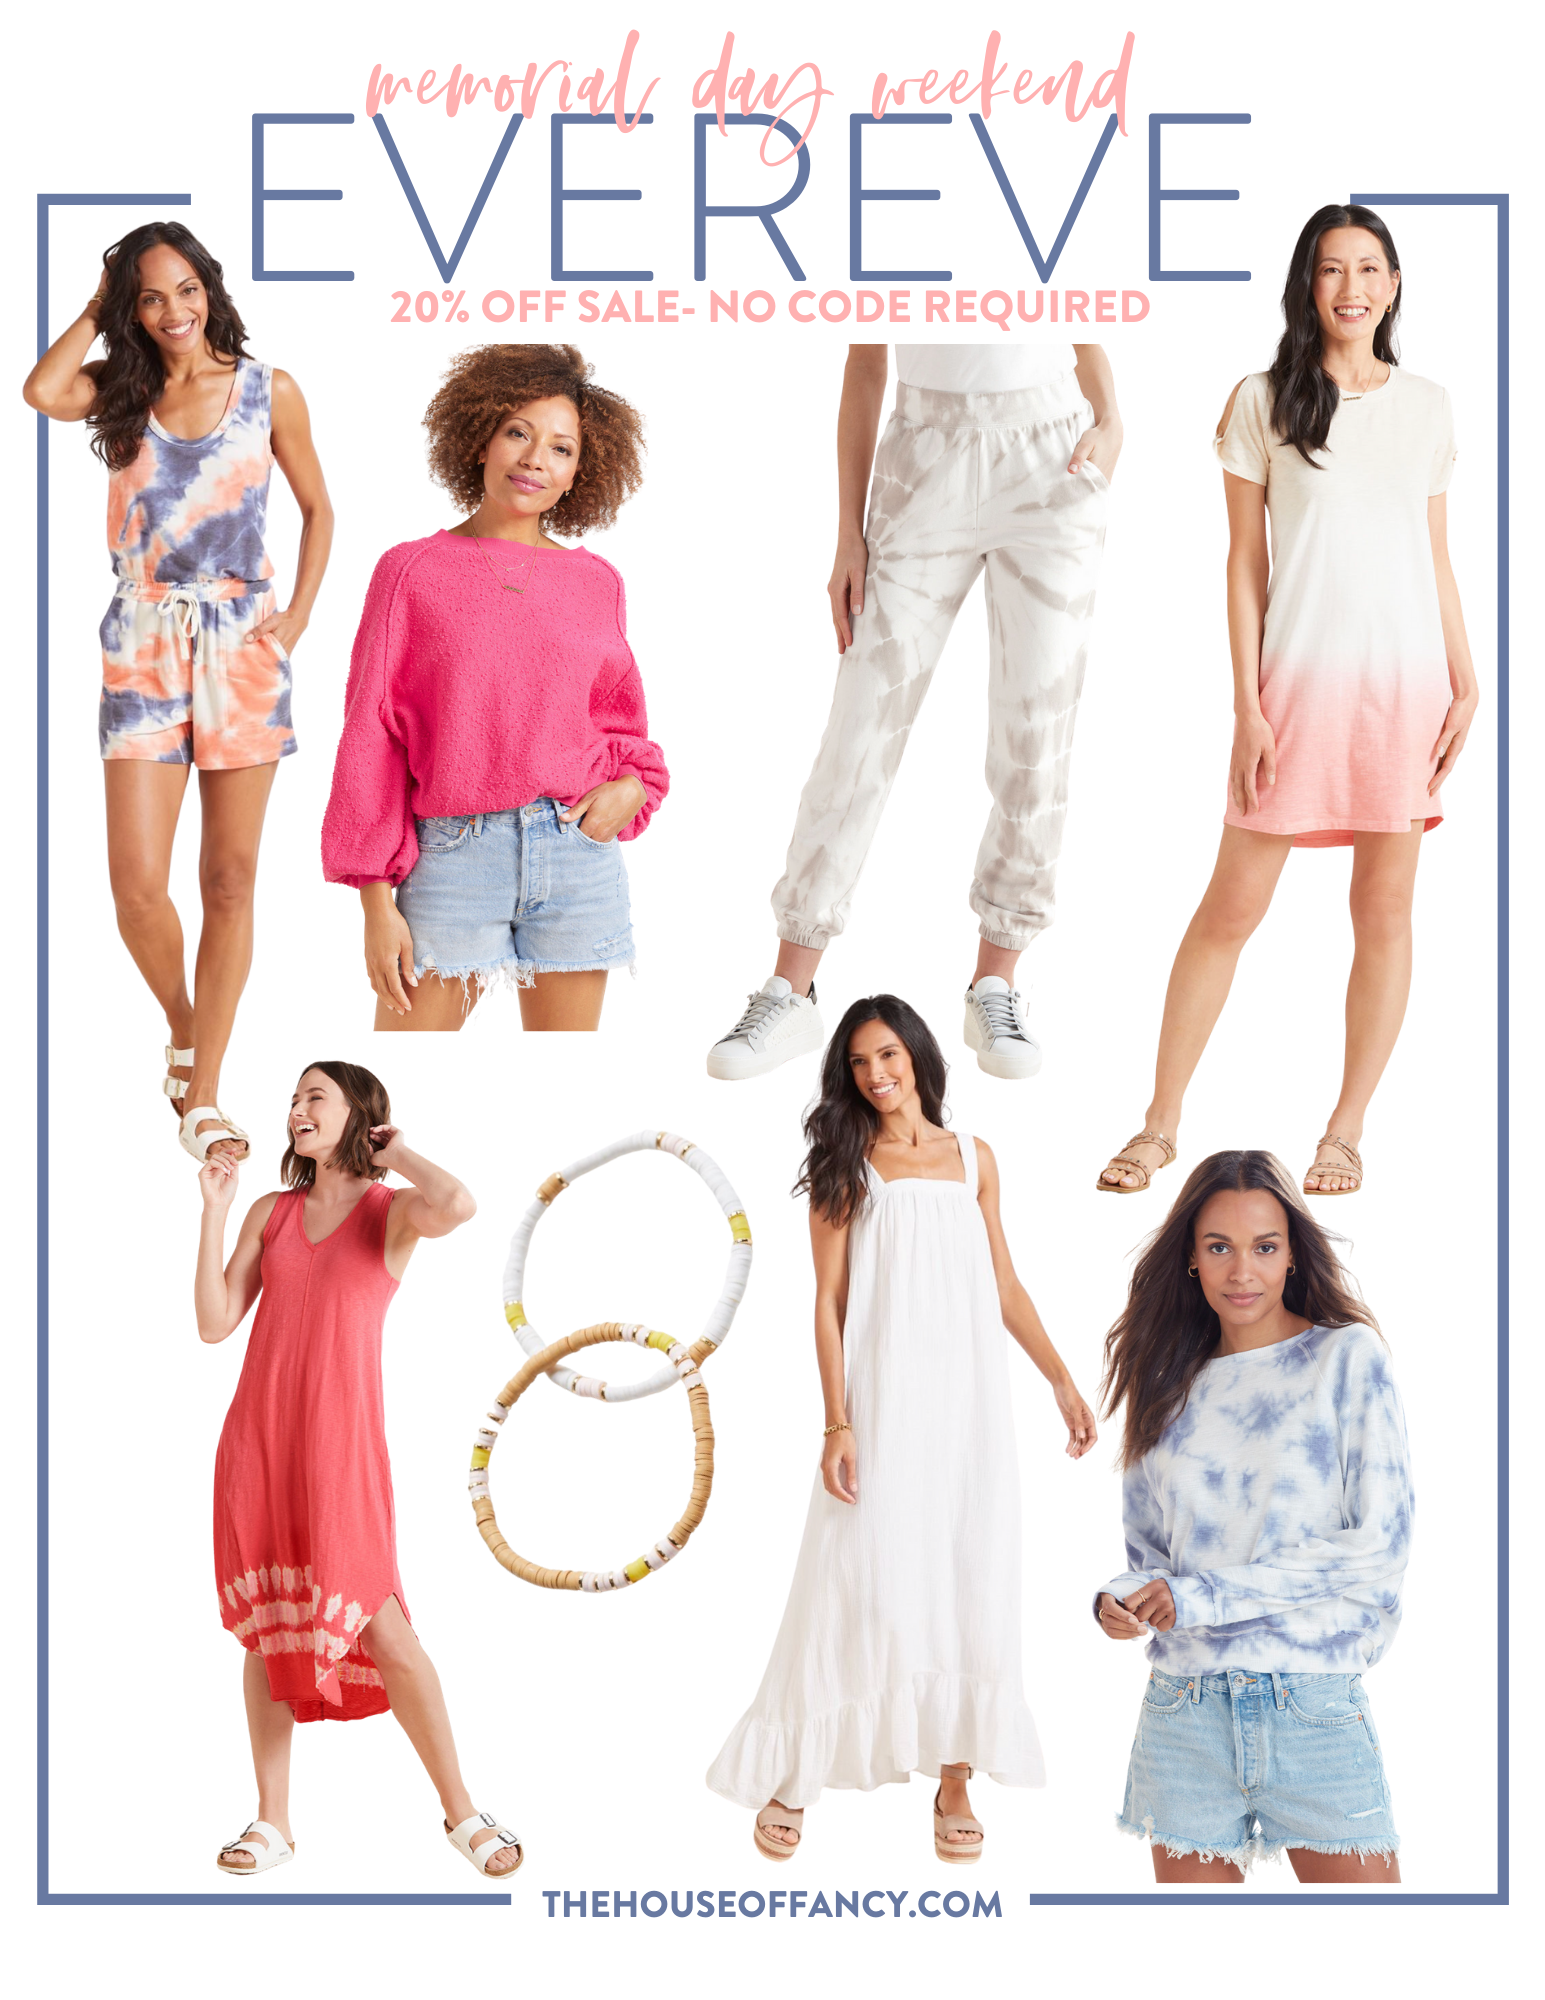 Memorial Day Sales by popular Houston life and style blog, The House of Fancy: collage image of Evereve tie dye romper, Evereve puff sleeve top, Evereve tie dye jogger pants, Evereve ombre t-shirt dress, Evereve white and brown bead bracelets, Evereve white ruffle hem maxi dress, Evereve blue and white tie dye sweatshirt, and Evereve tie dye hem sleeveless dress.